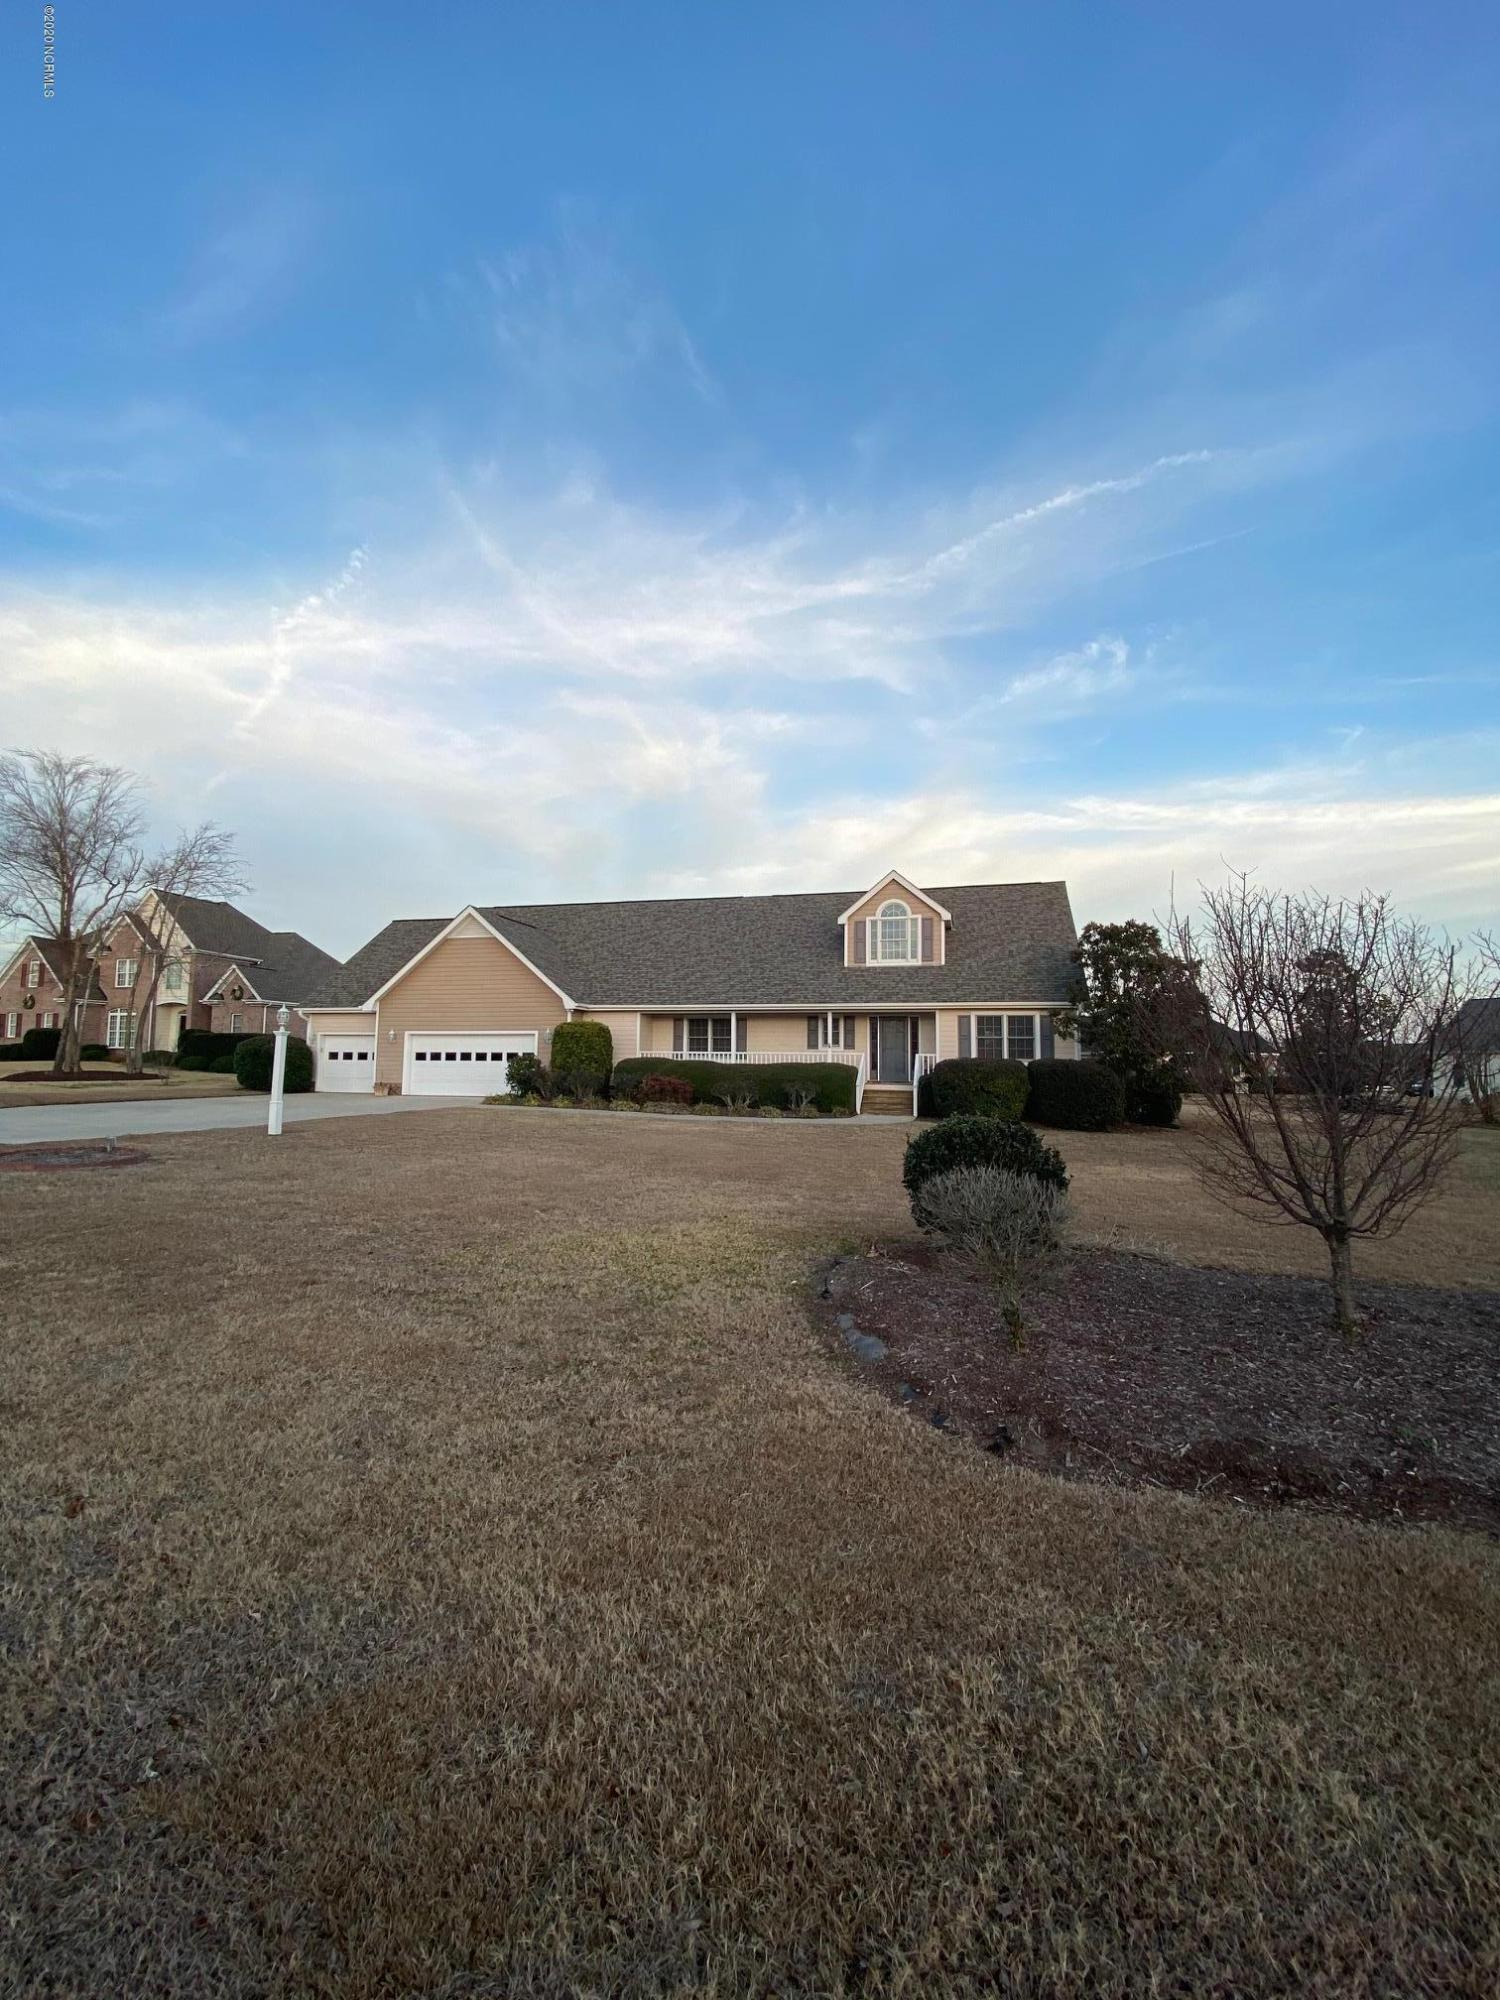 153 Magens Way, Cedar Point, North Carolina 28584, 3 Bedrooms Bedrooms, ,3 BathroomsBathrooms,Residential,For Sale,Magens,100199152